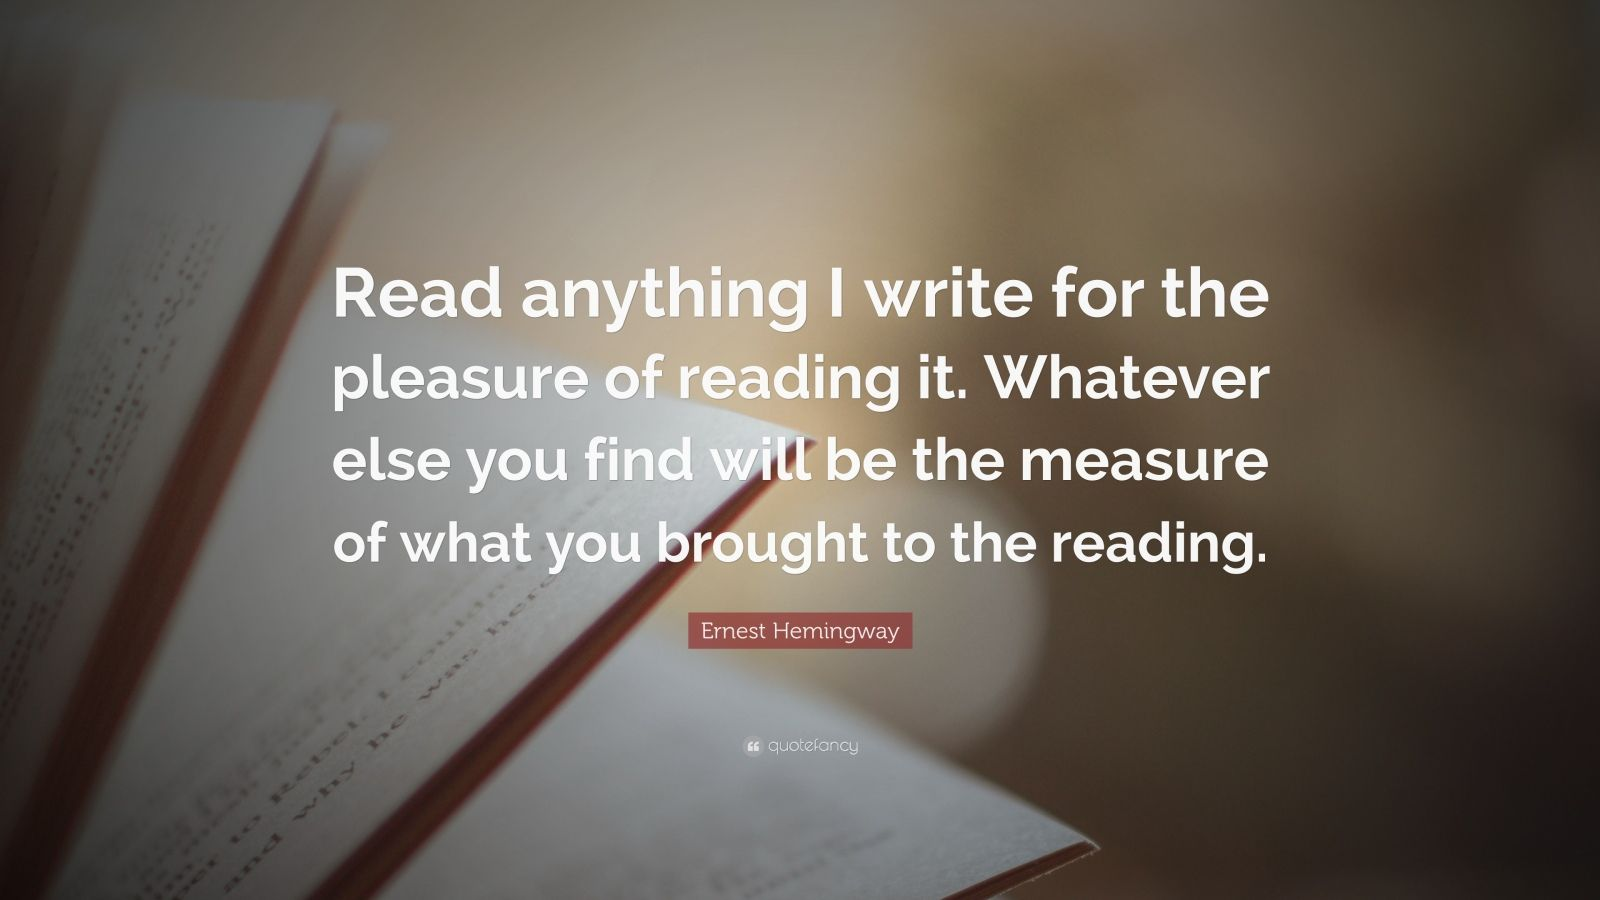 """Ernest Hemingway Quote: """"Read anything I write for the pleasure of reading it. Whatever else you find will be the measure of what you brought to the reading."""""""